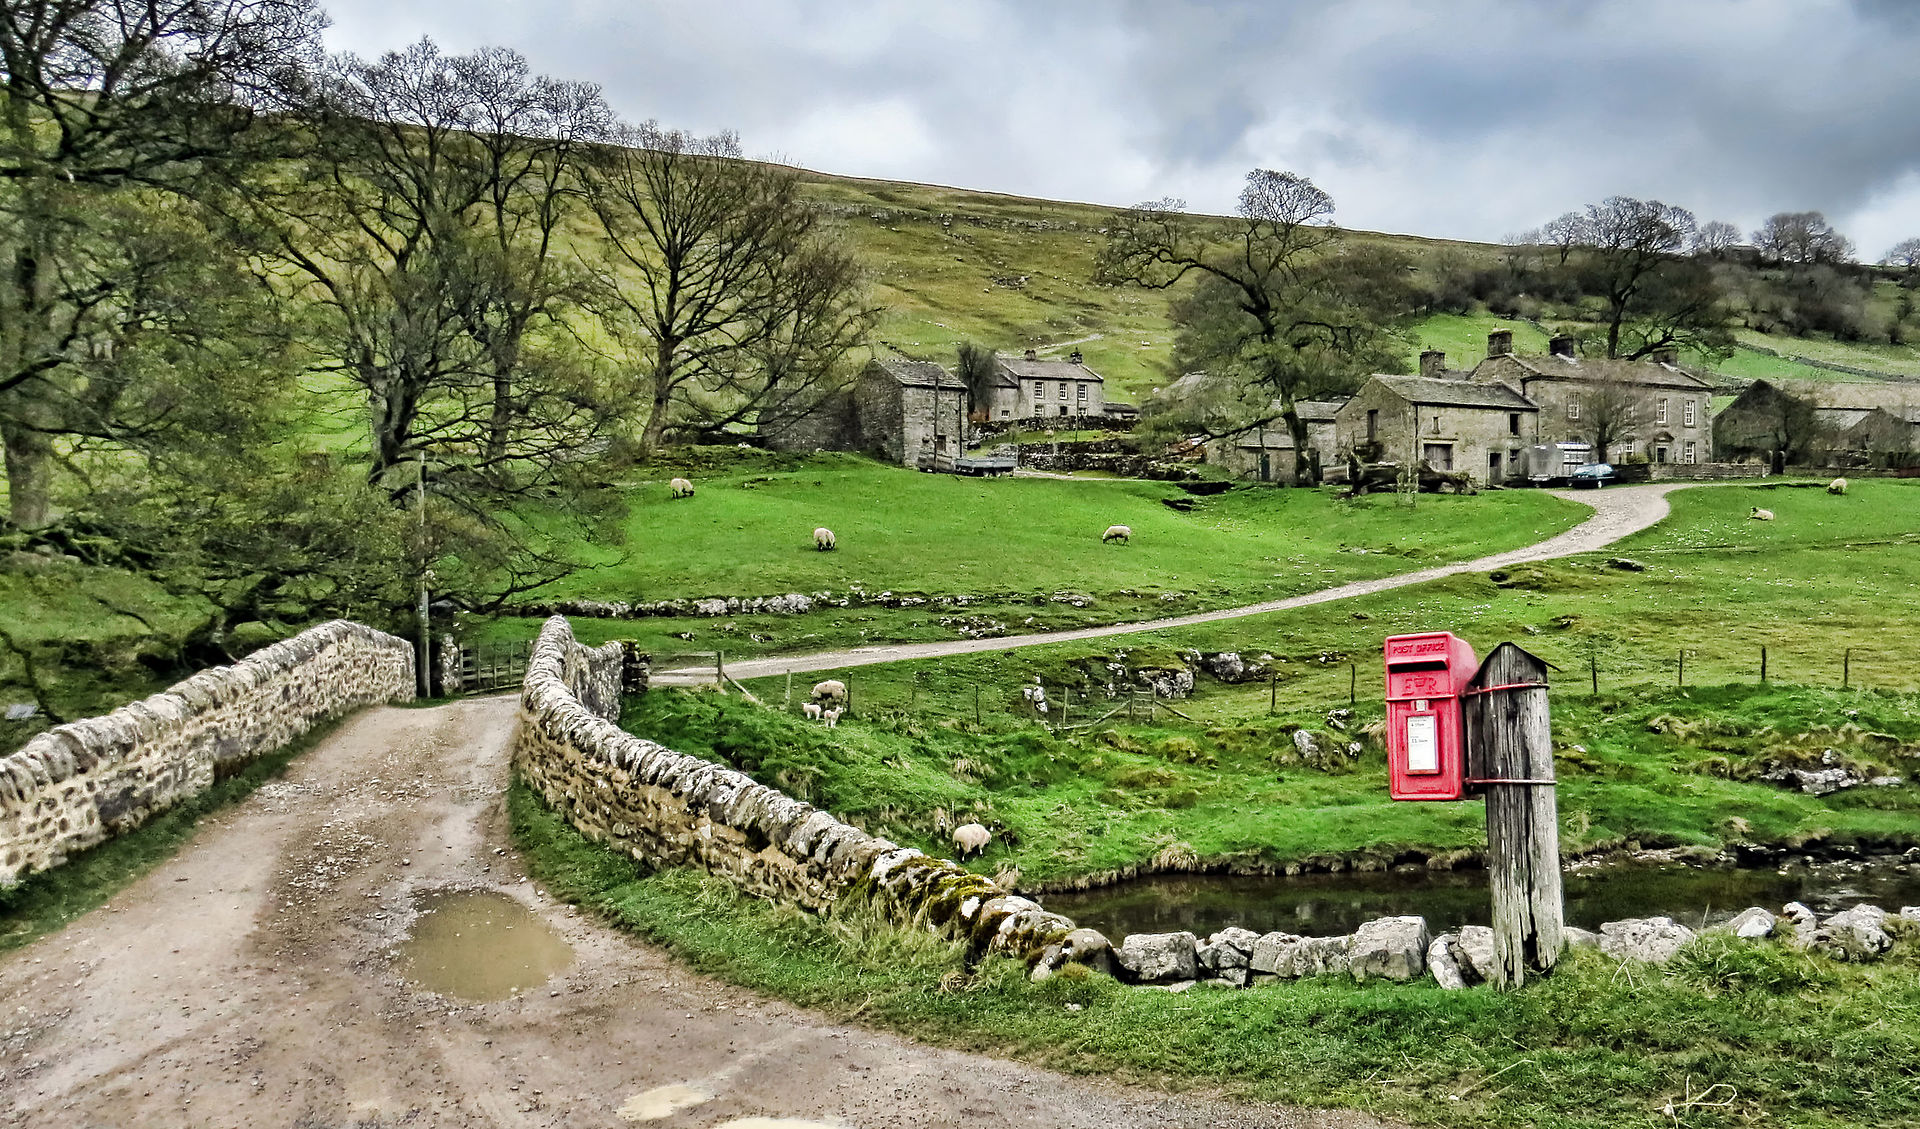 Biosecurity for invasive species in the Yorkshire Dales (impact case study)